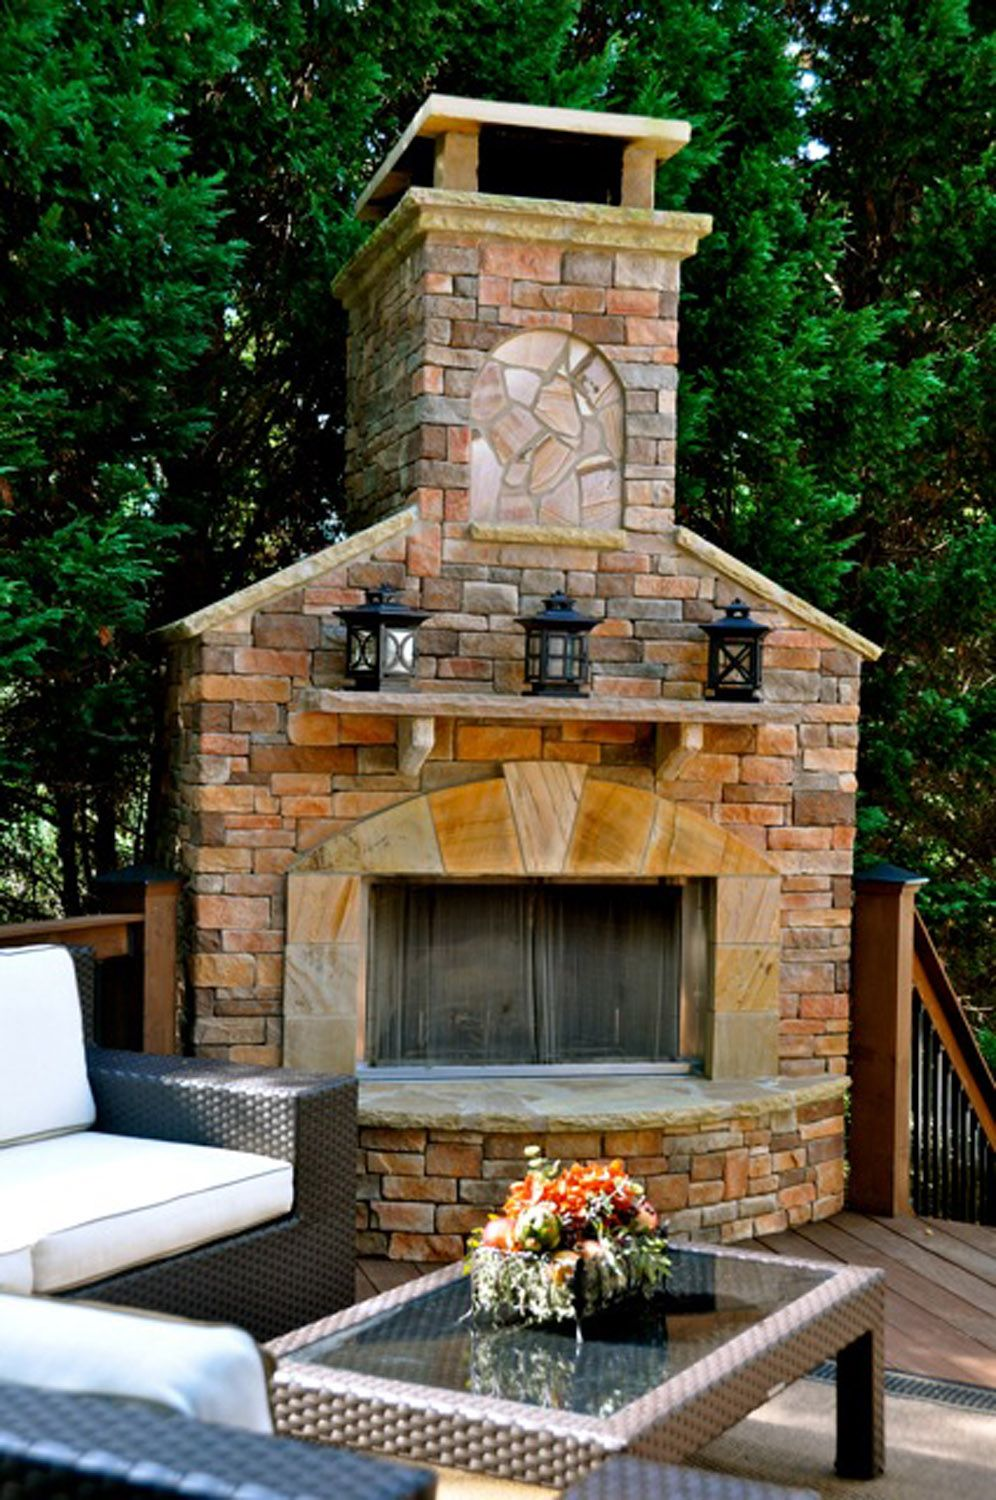 : Extraordinary Outdoor Living Room Decoration Using Cream Outdoor Stone Fireplace Along With Black | dreamy outdoor spaces/decor | Pinterest | Ou…